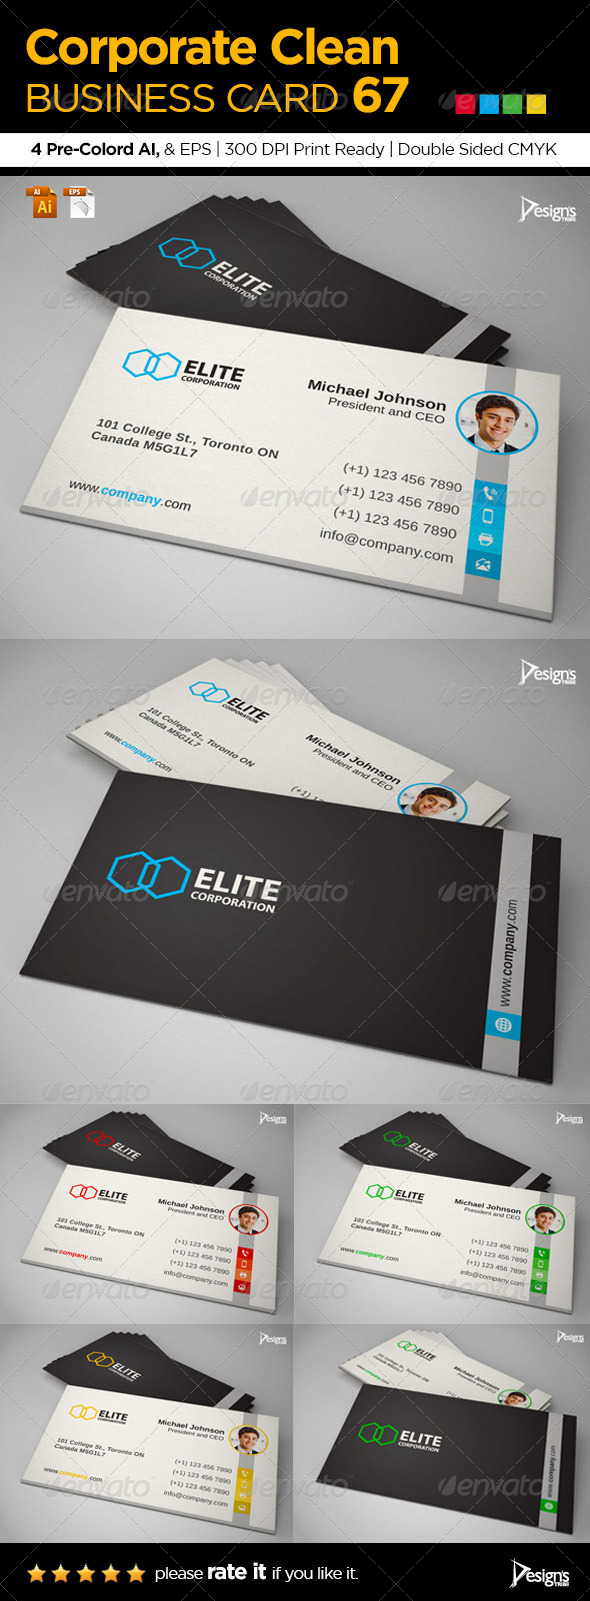 GraphicRiver Corporate Clean Business Card 67 6558797